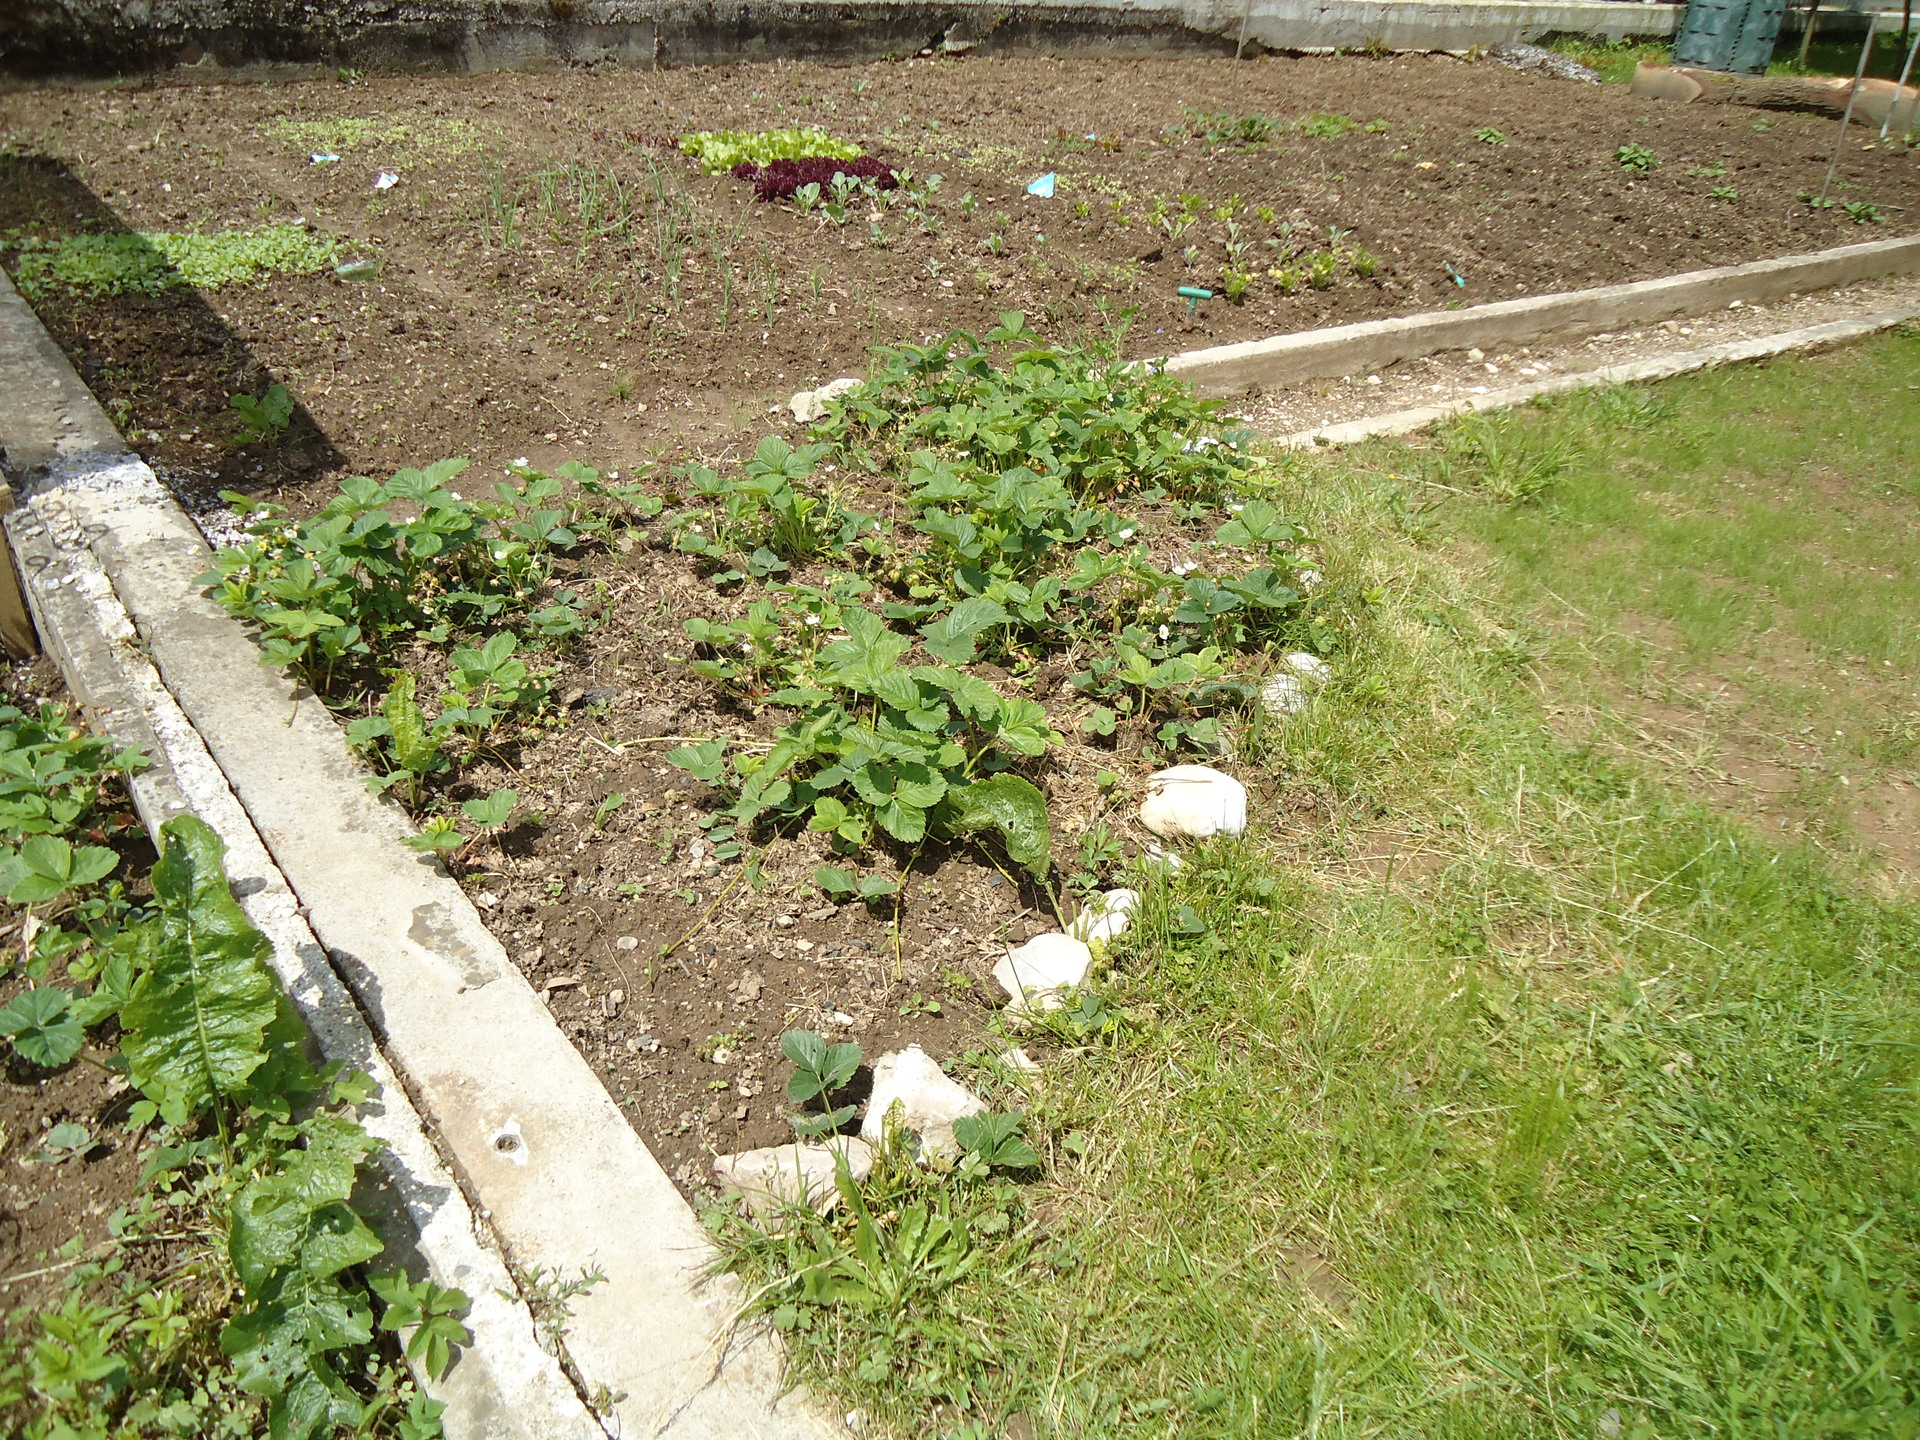 A strawberry patch